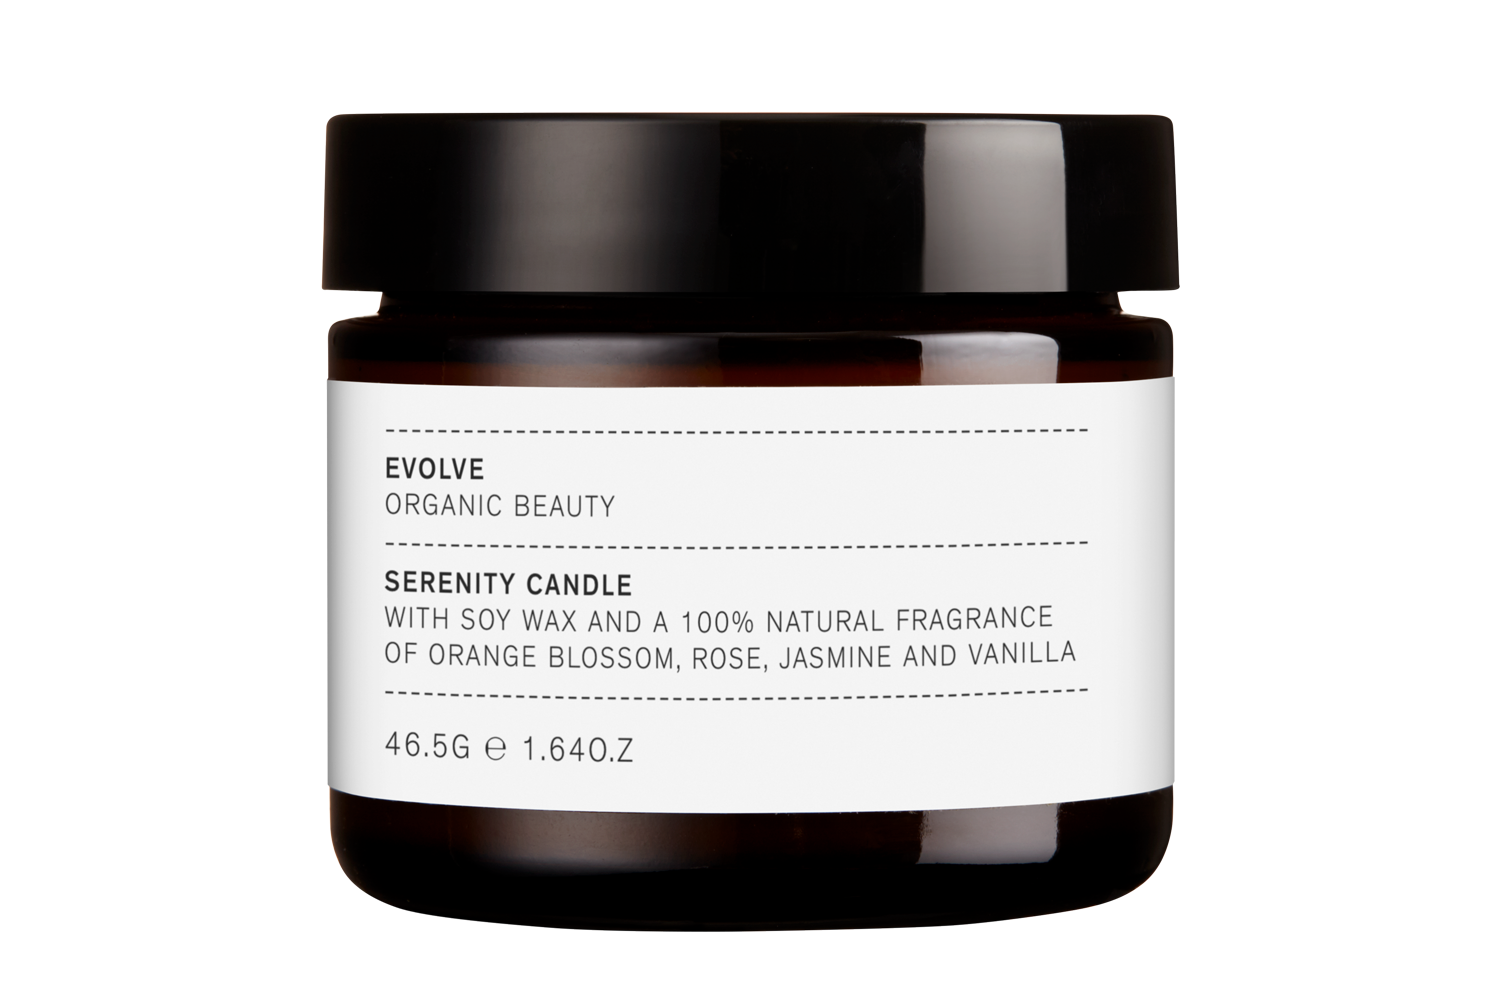 EVOLVE Serenity Candle